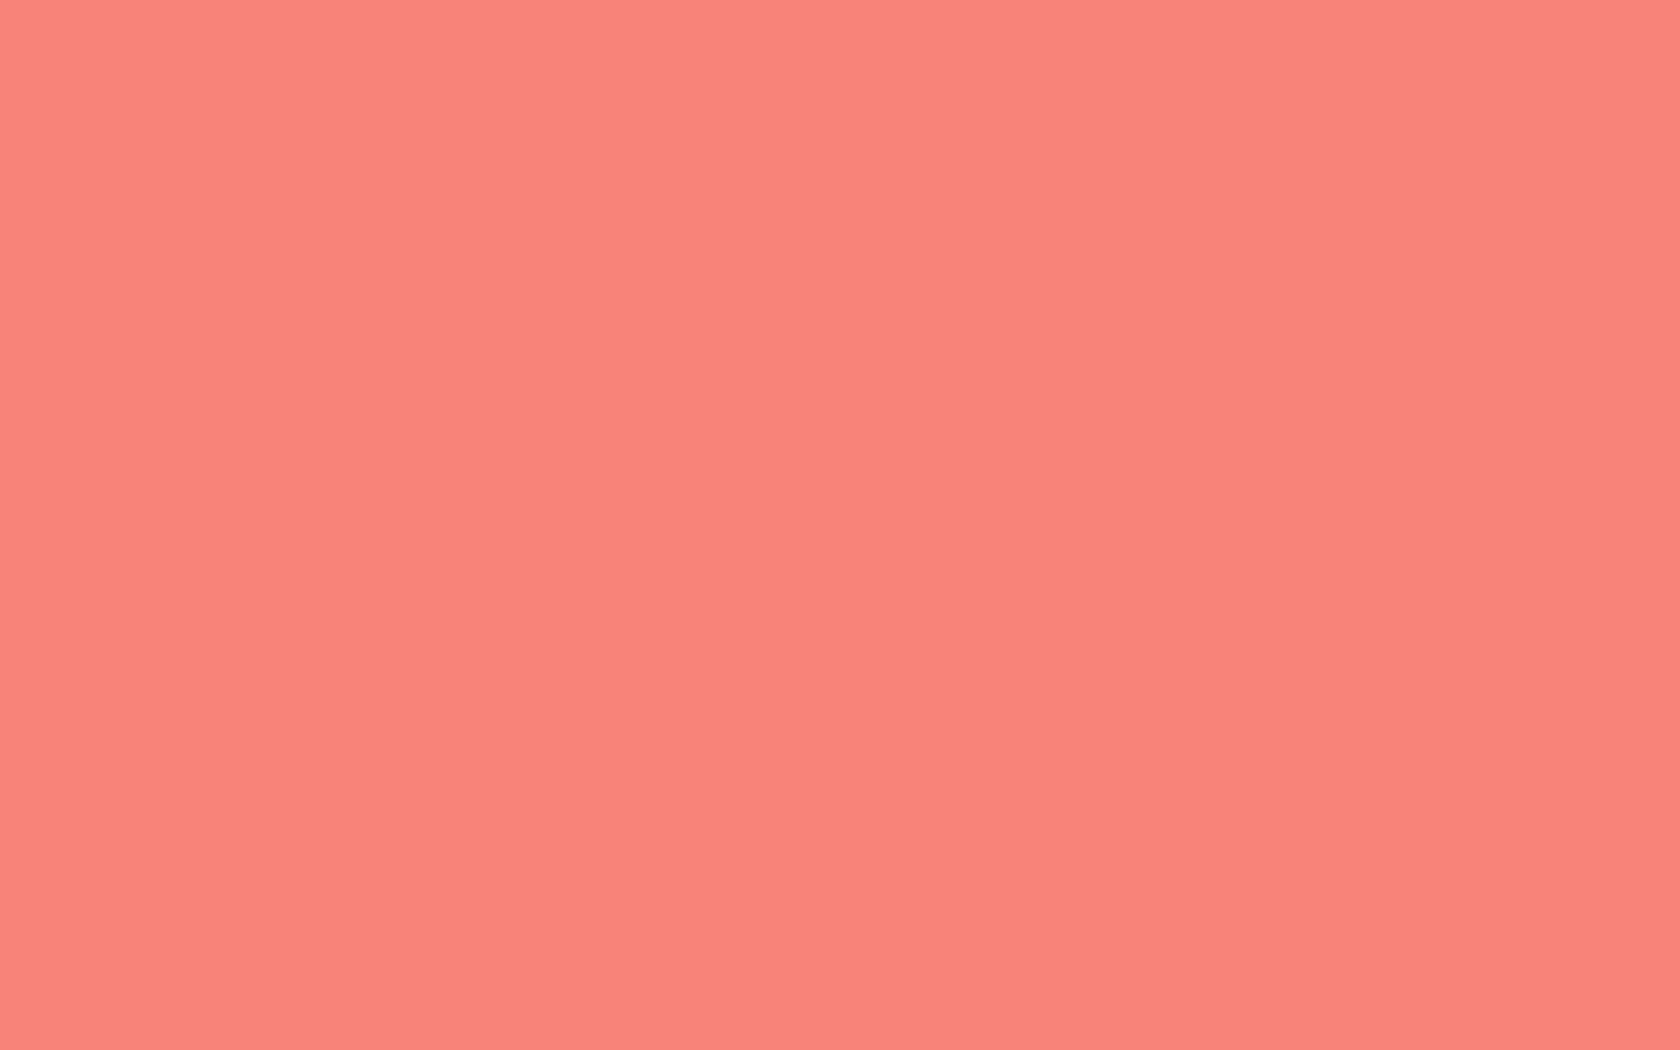 1680x1050 Coral Pink Solid Color Background